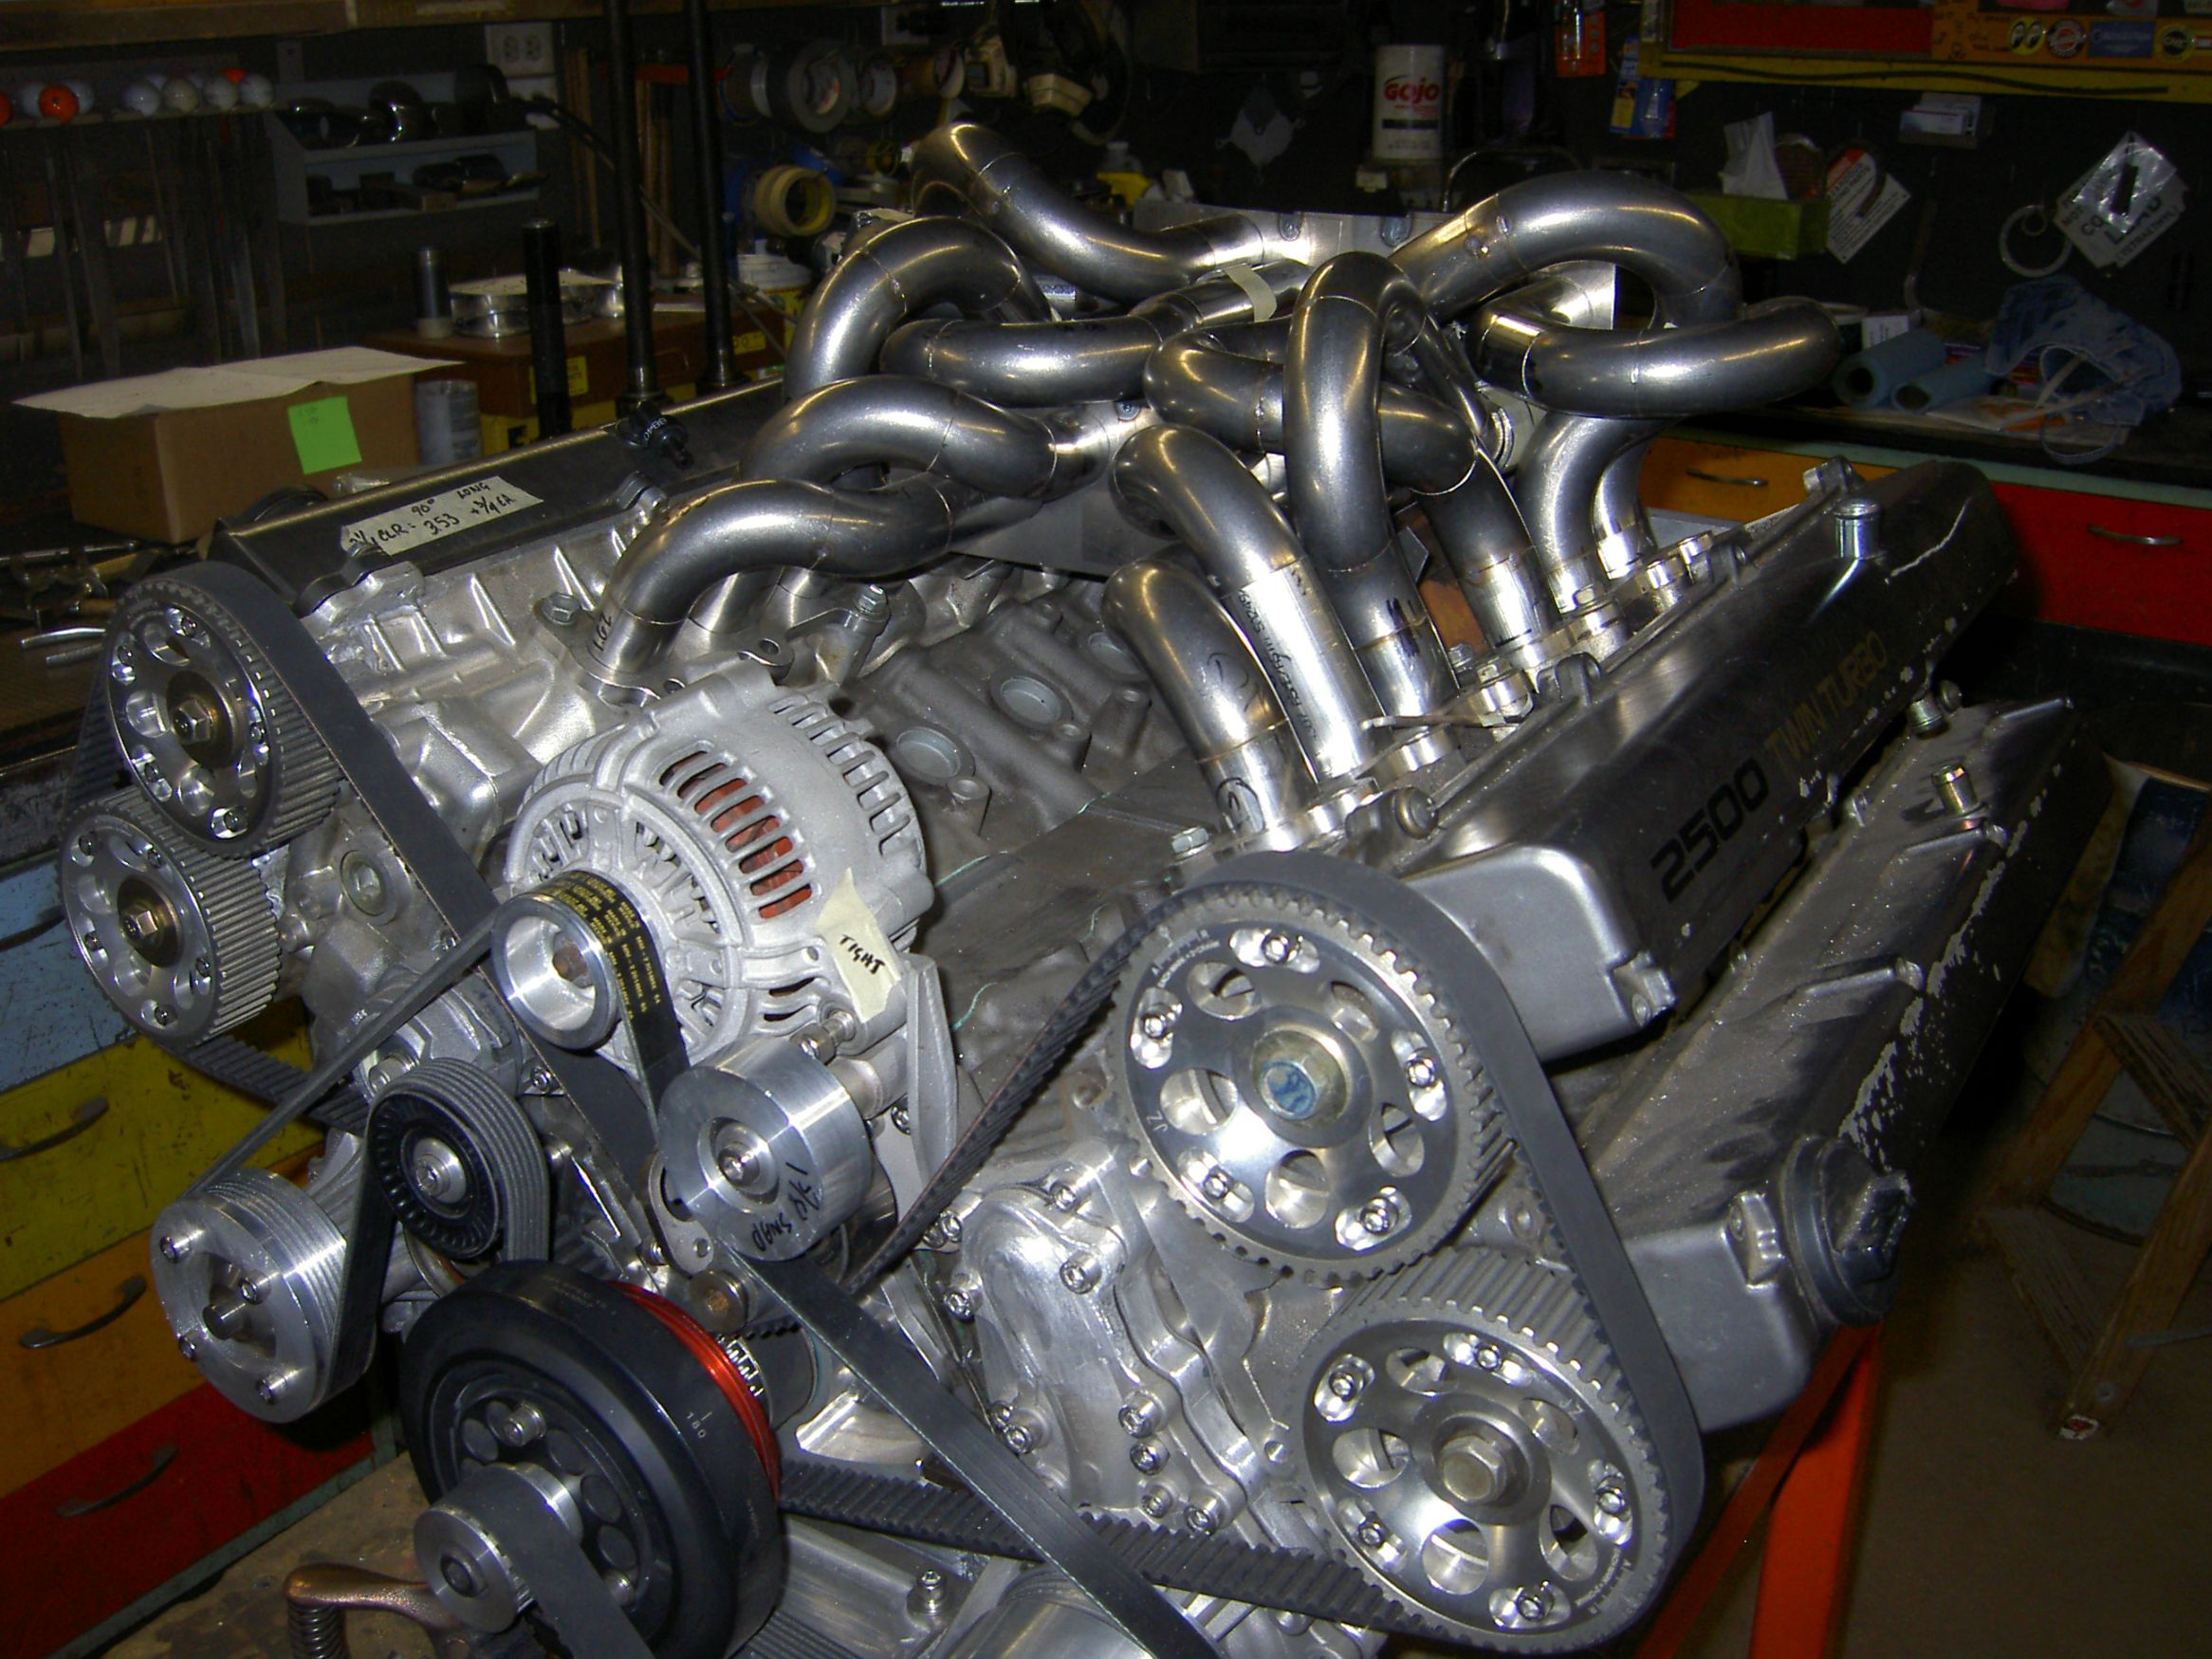 V12 Built By Joining Two Toyota Supra Engines a Retired